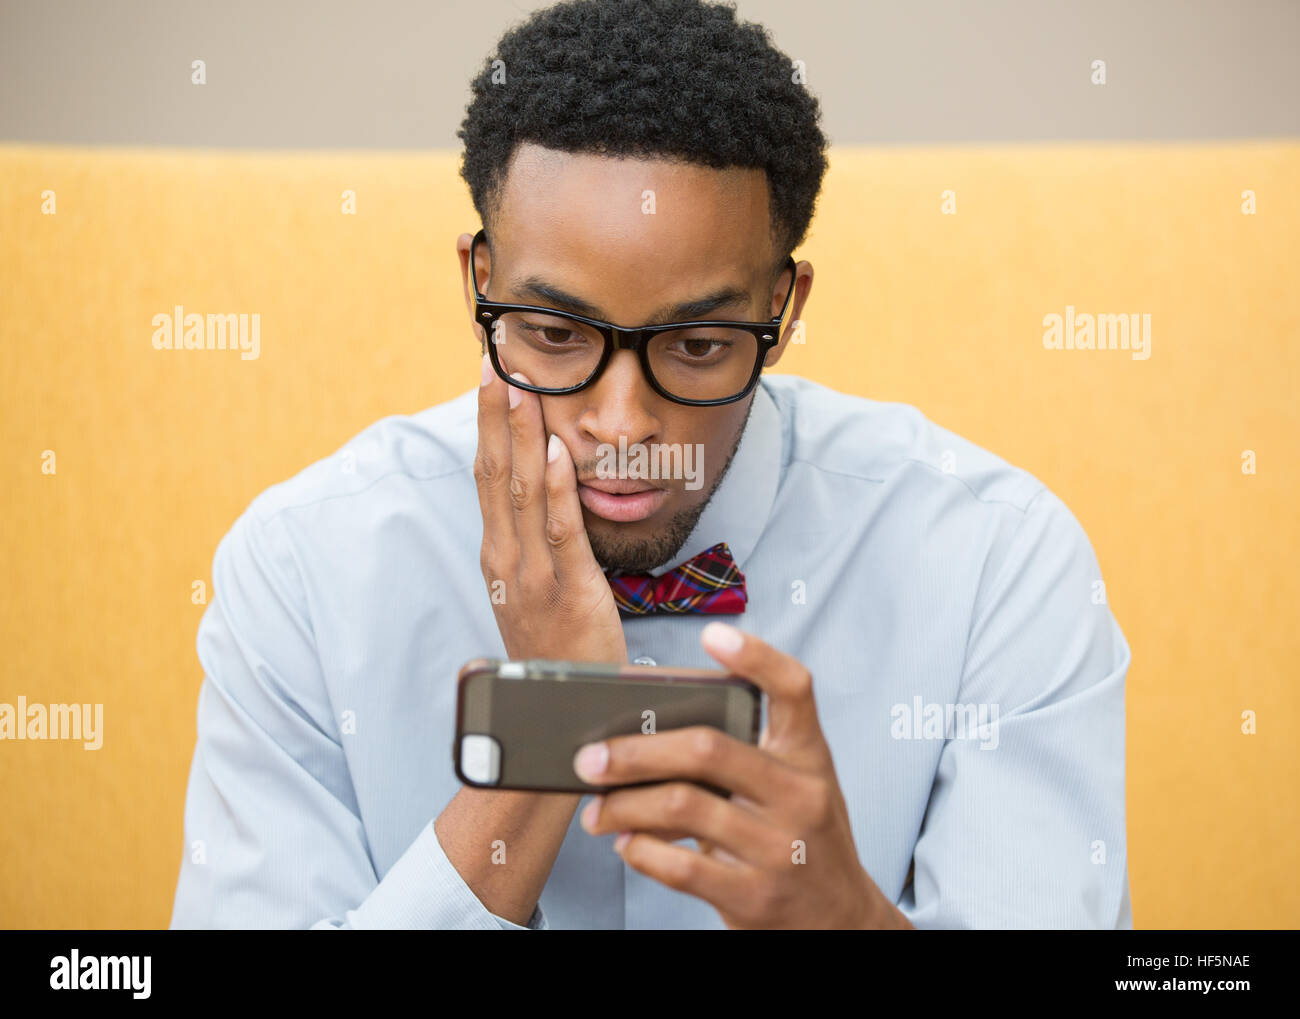 Closeup portrait stunned, surprised businessman in black glasses and bowtie, placing hand on cheek, staring at cellphone, - Stock Image